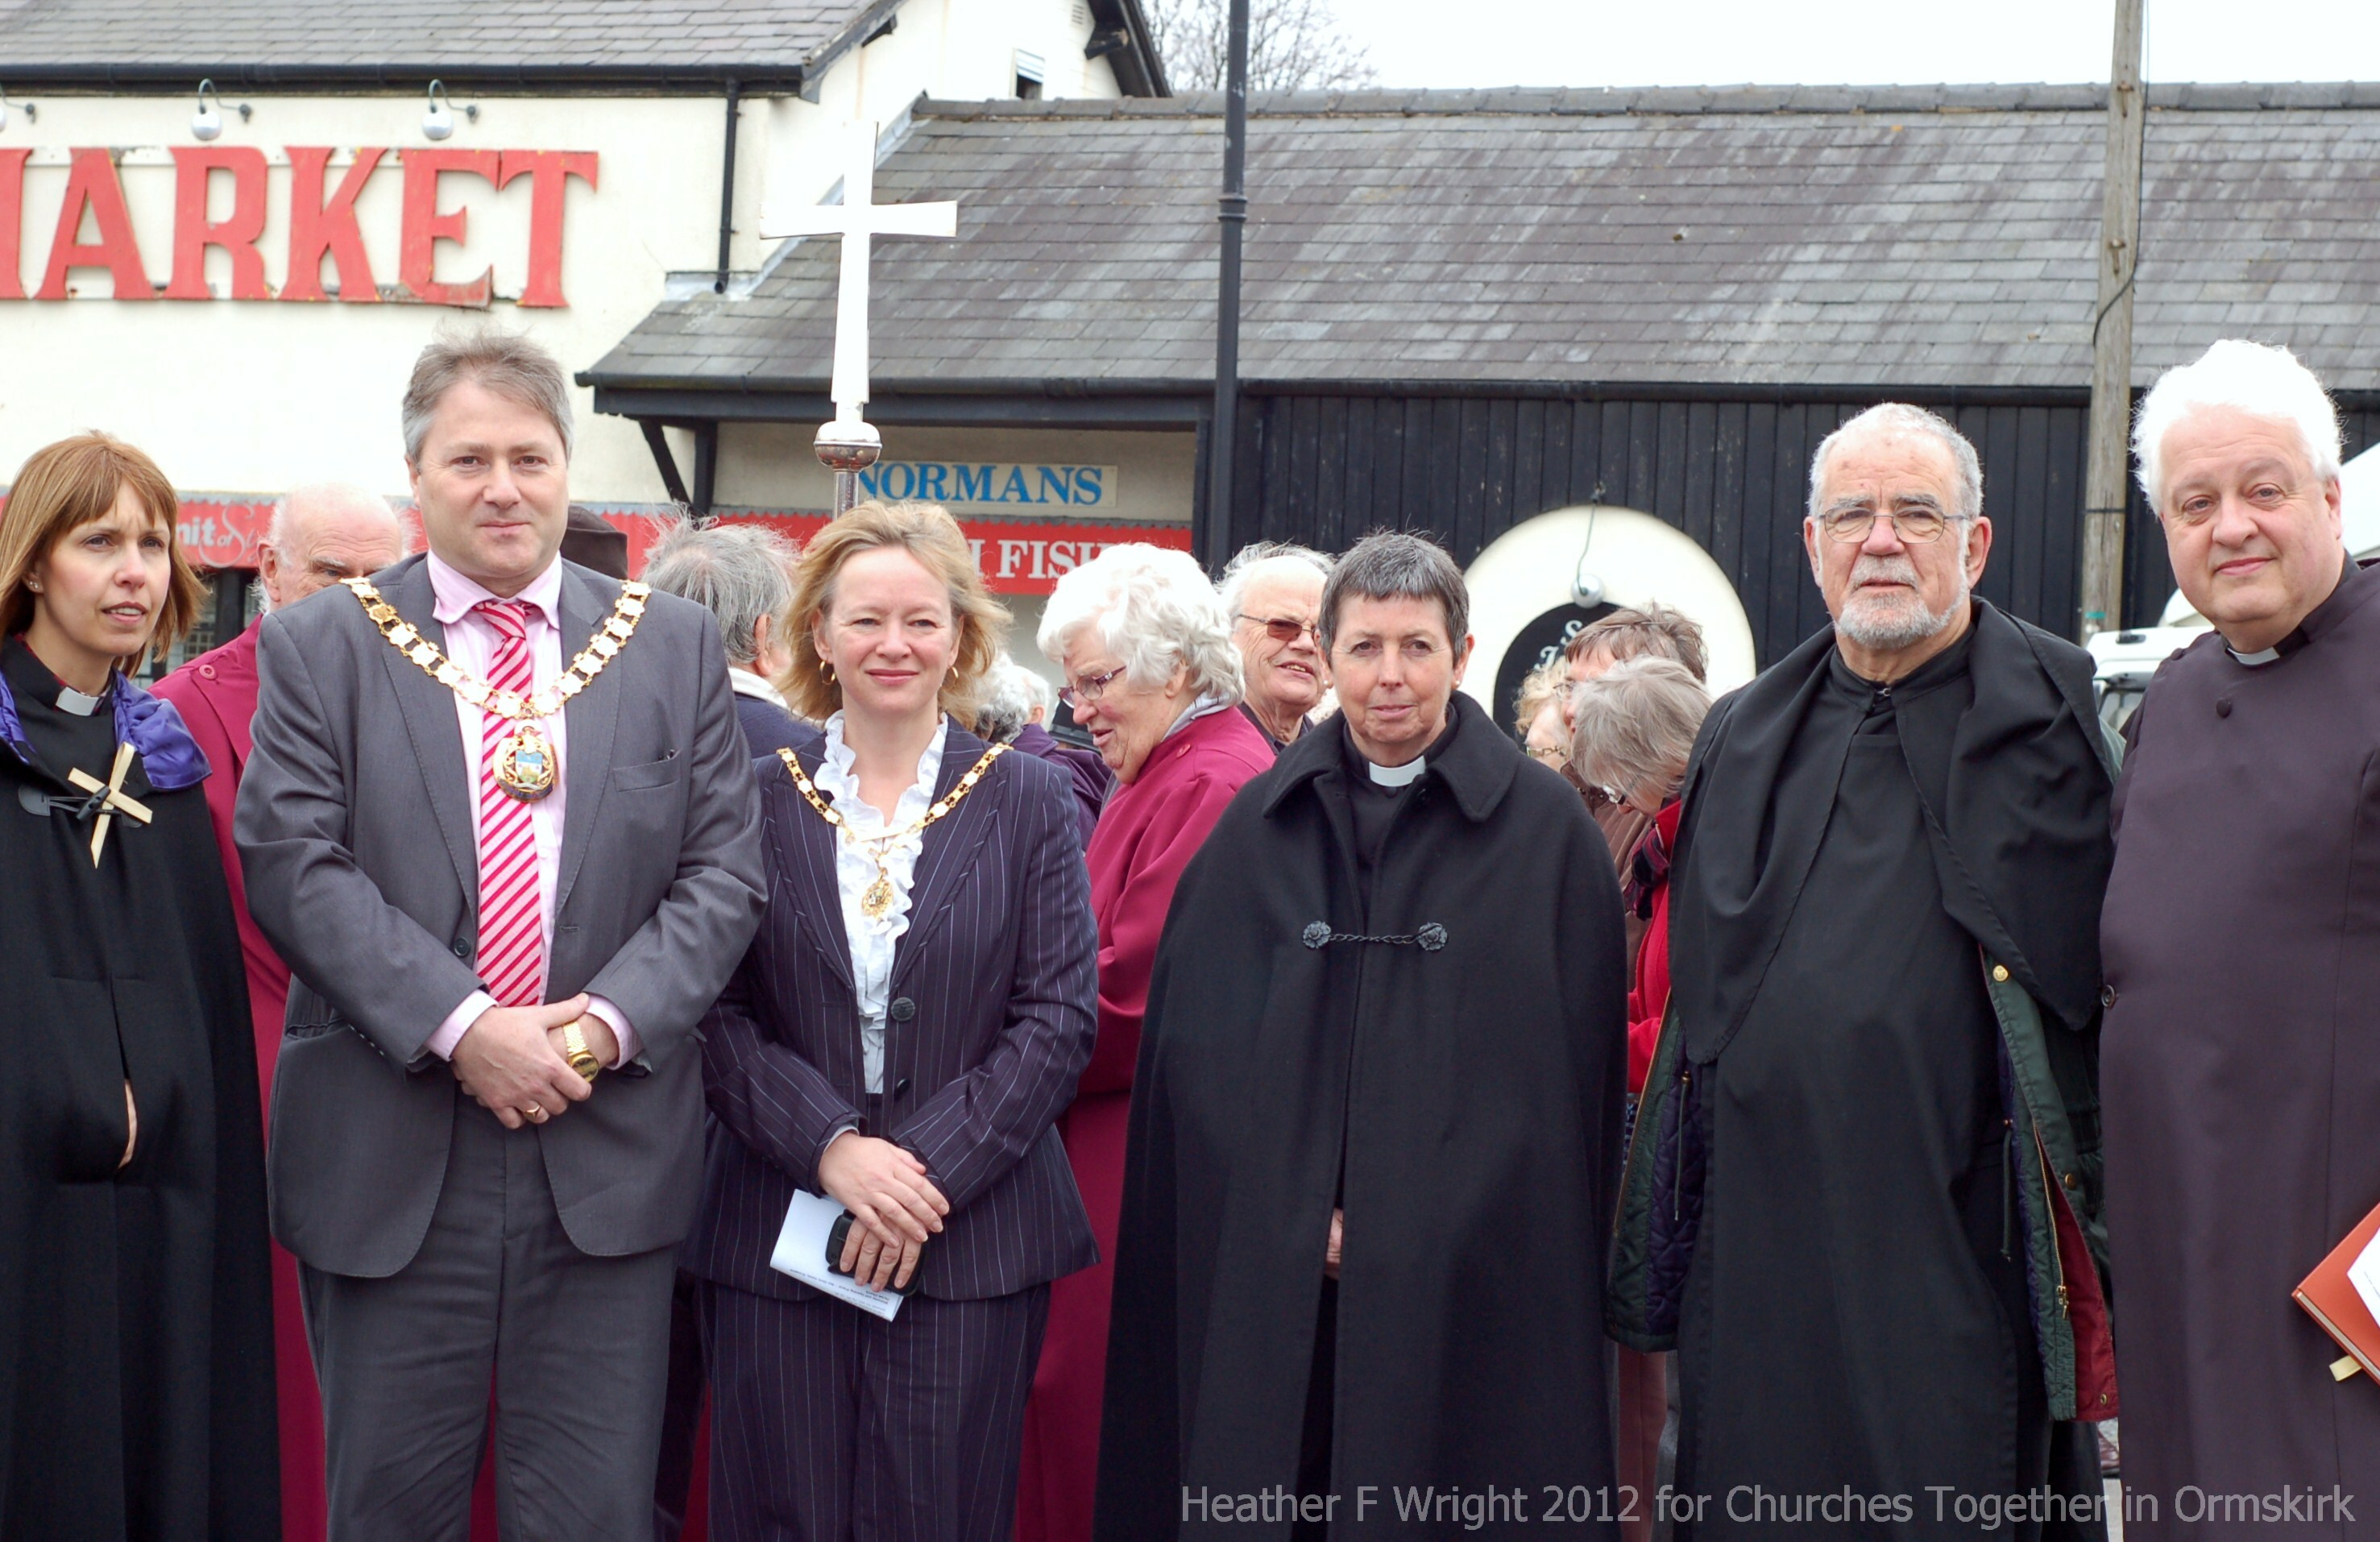 West Lancs Mayor & Mayoress with Ormskirk Clergy Good Friday 2012